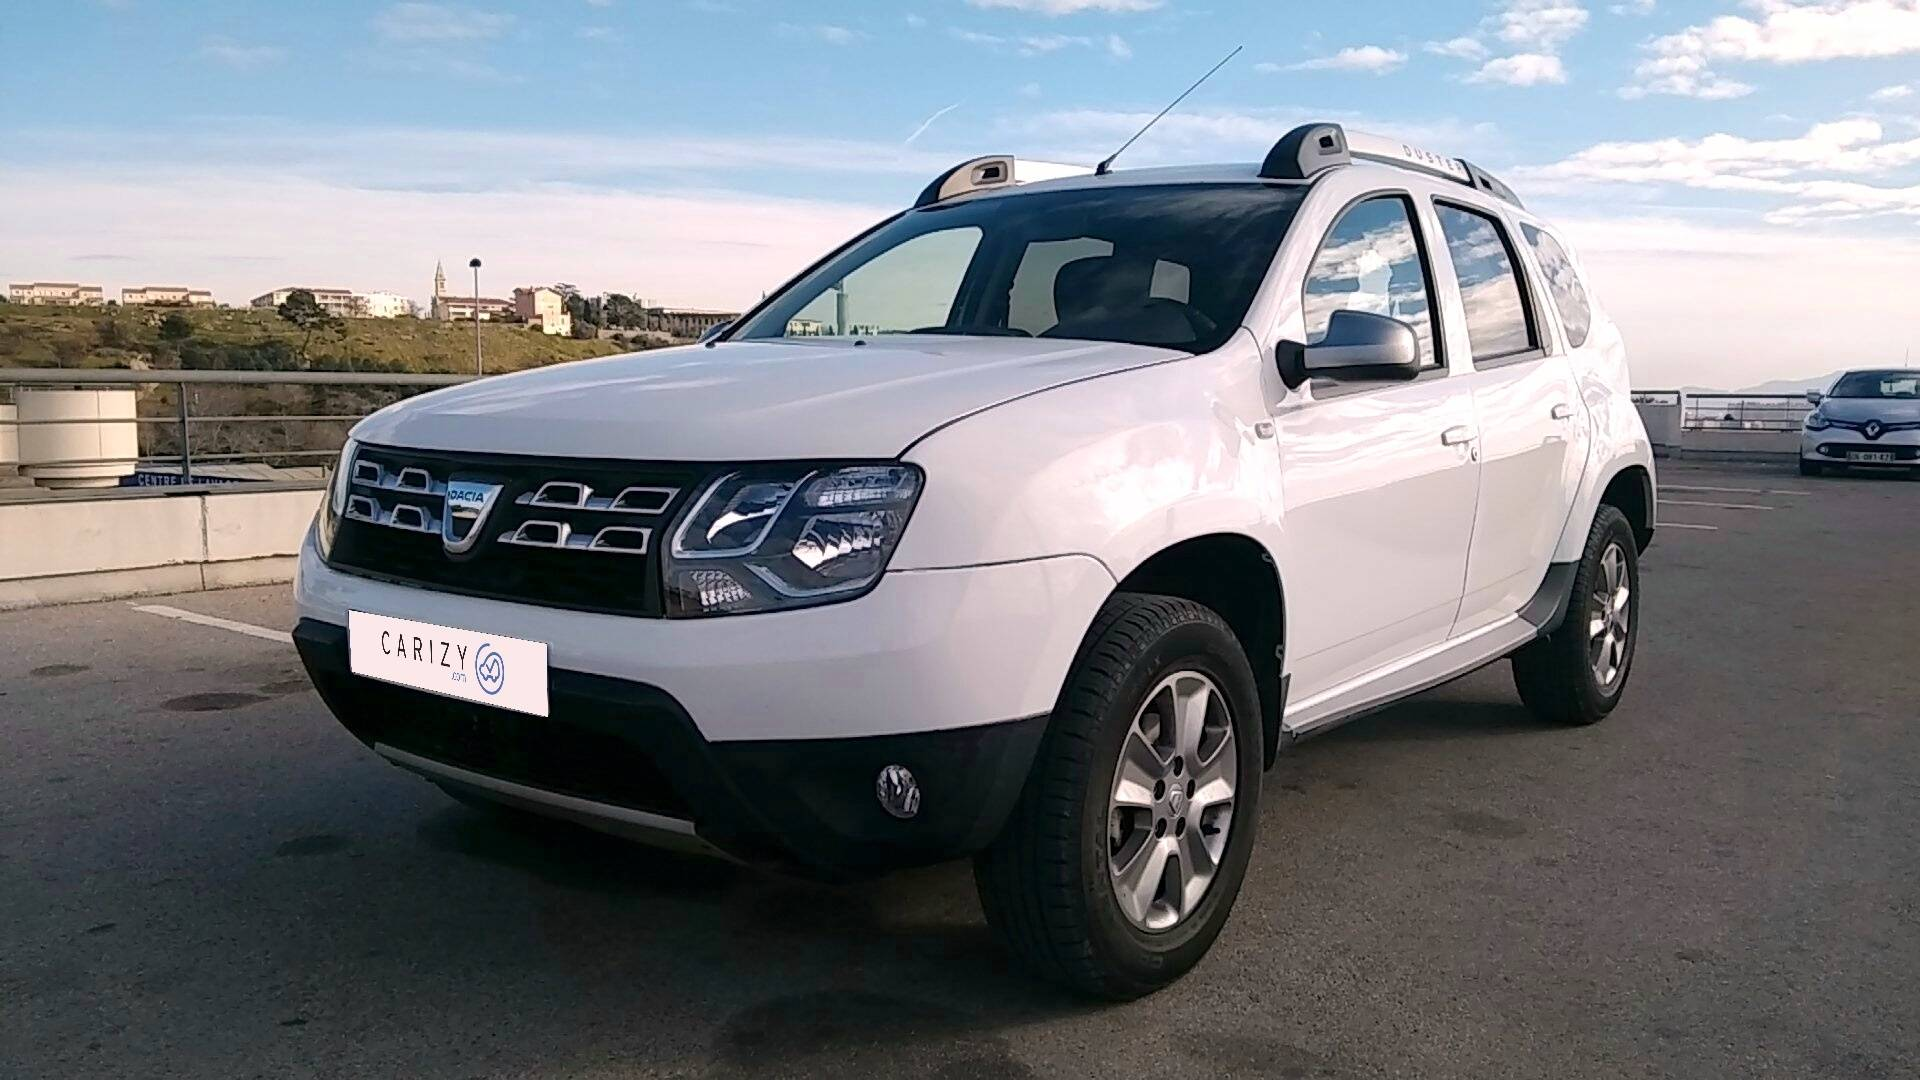 dacia duster d 39 occasion 1 5 dci 110 black touch 4x2 marseille carizy. Black Bedroom Furniture Sets. Home Design Ideas